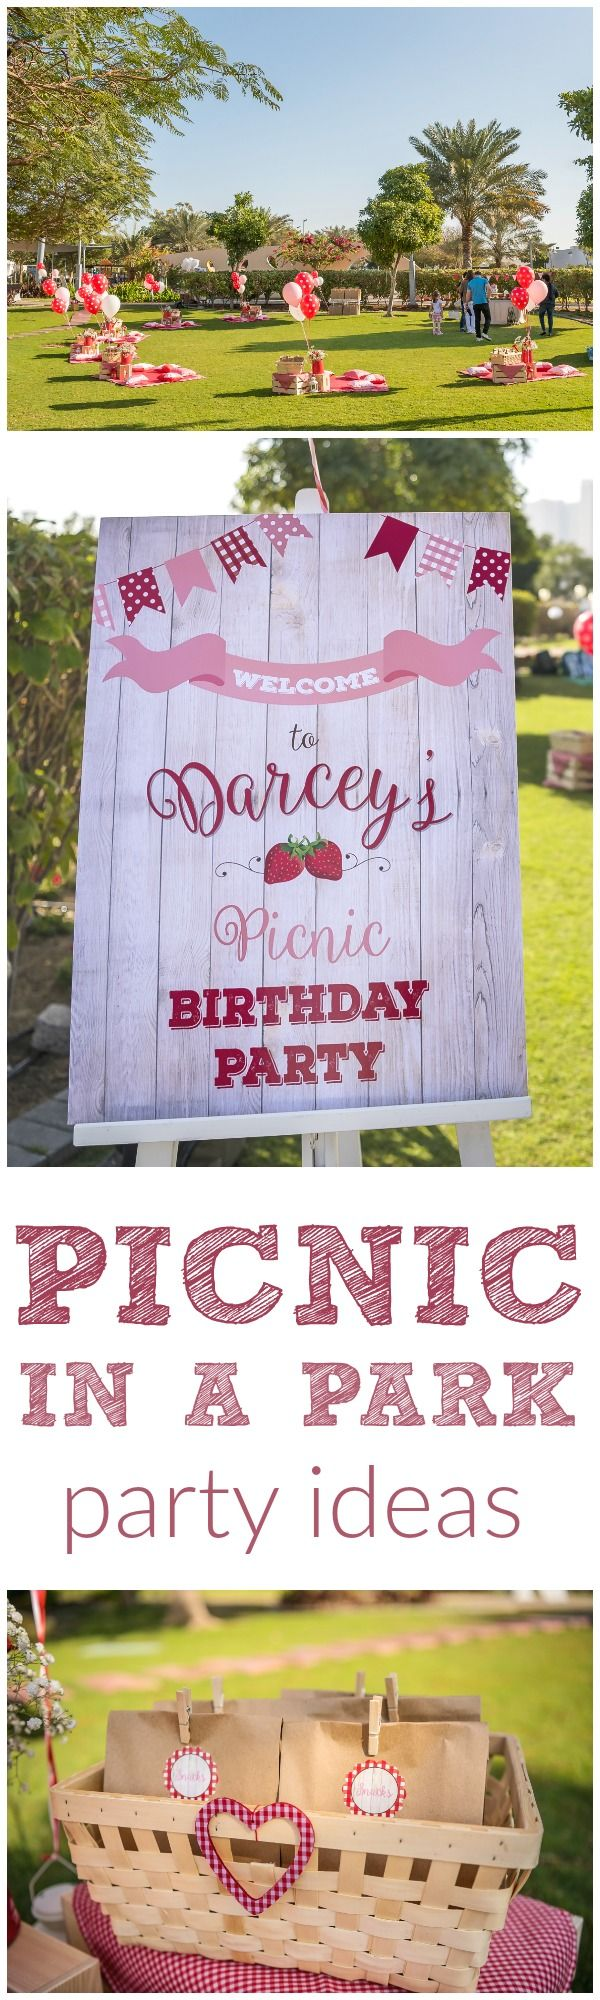 The ultimate Picnic in a Park Party! Stylish picnic party ideas <3.